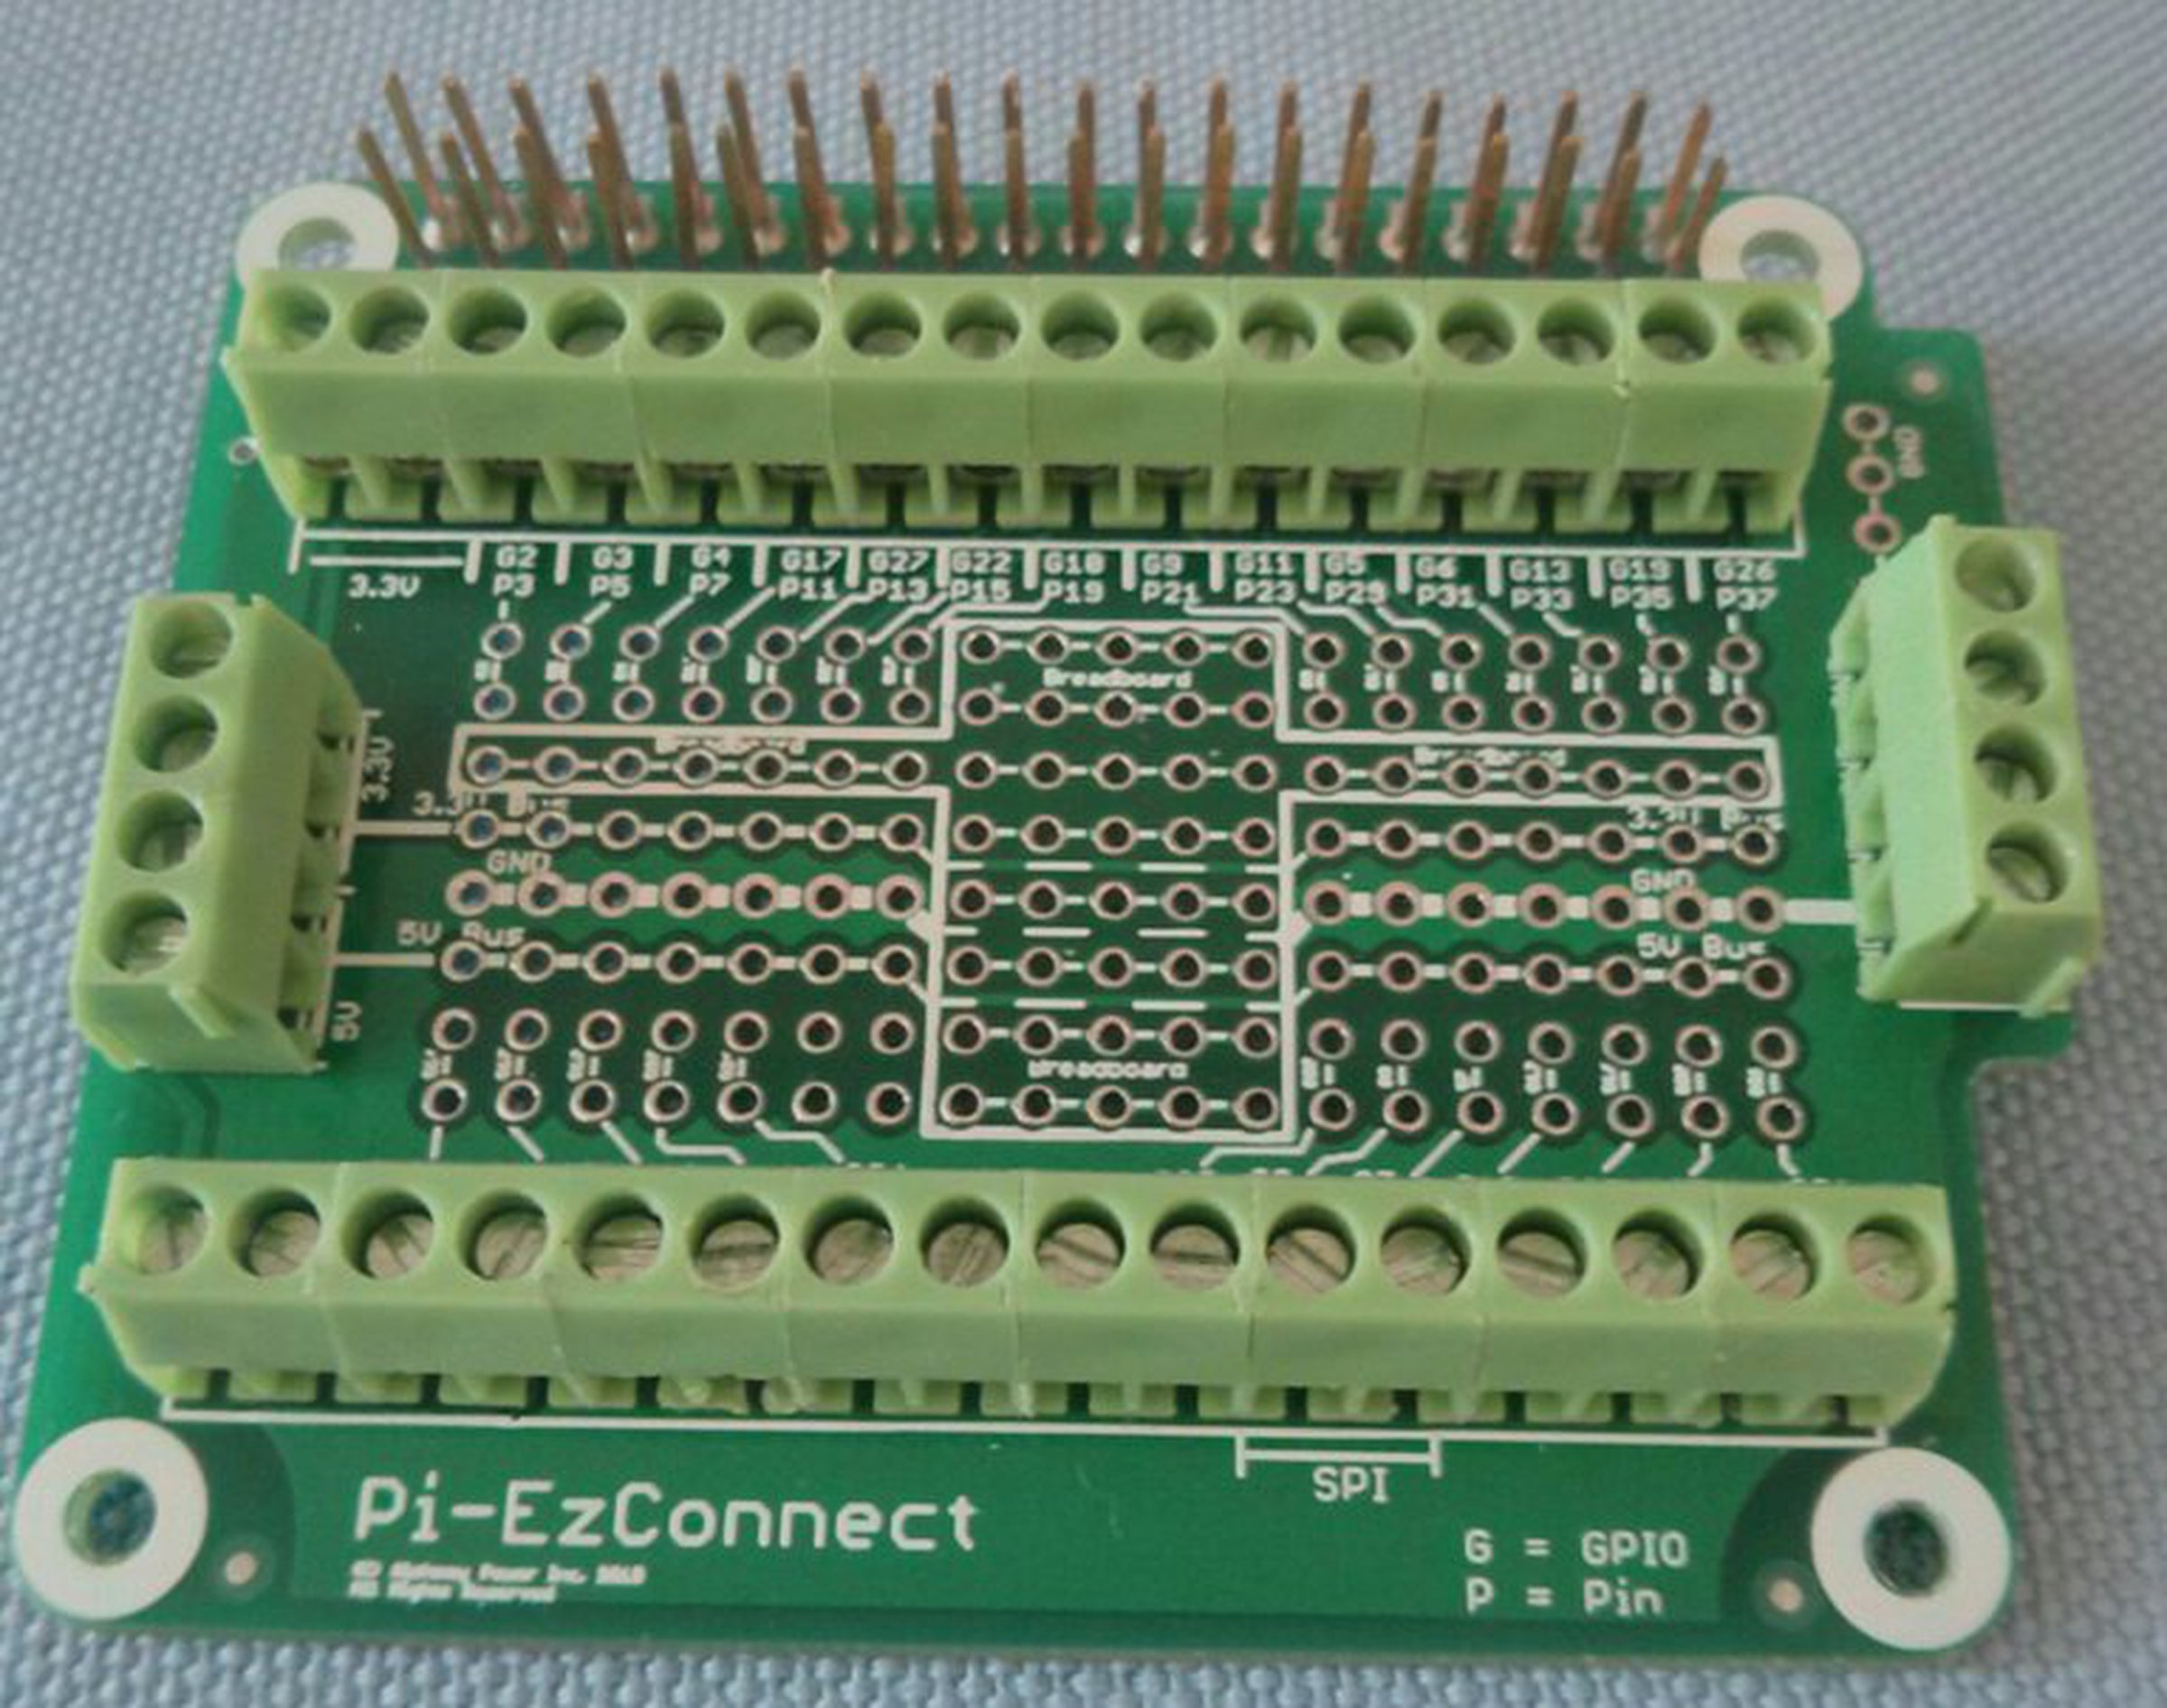 Pi Uptime Ups For A Raspberry From Alchemy Power Inc On Tindie Is Unplugged Before Connecting Anything To The Sale Ezconnect Easy Connect Gpio